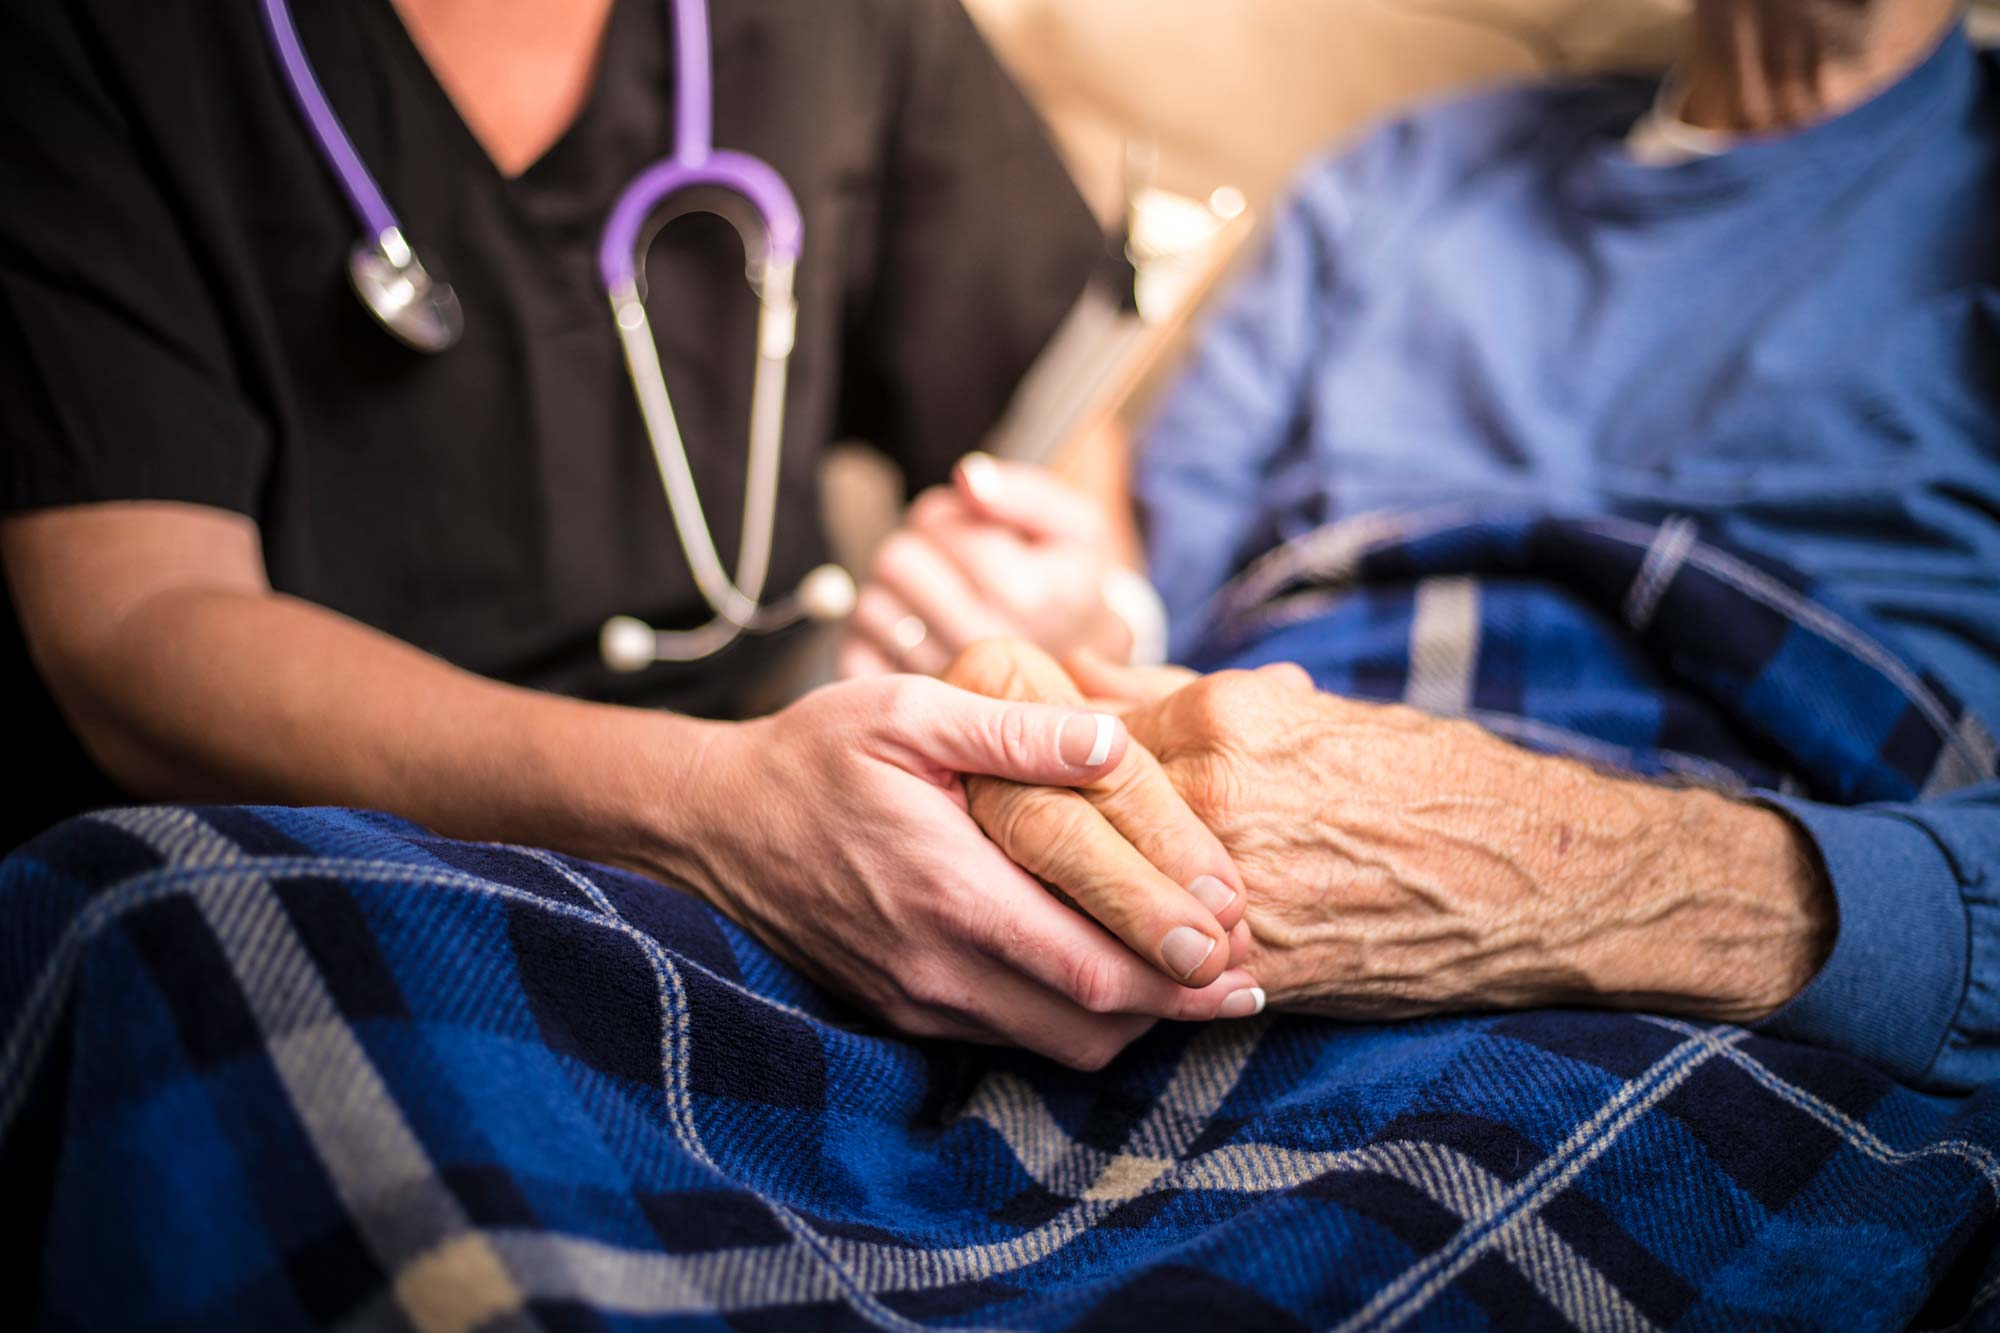 End-of-life care patient holding hands with caregiver at Tore's Home in Brevard, NC